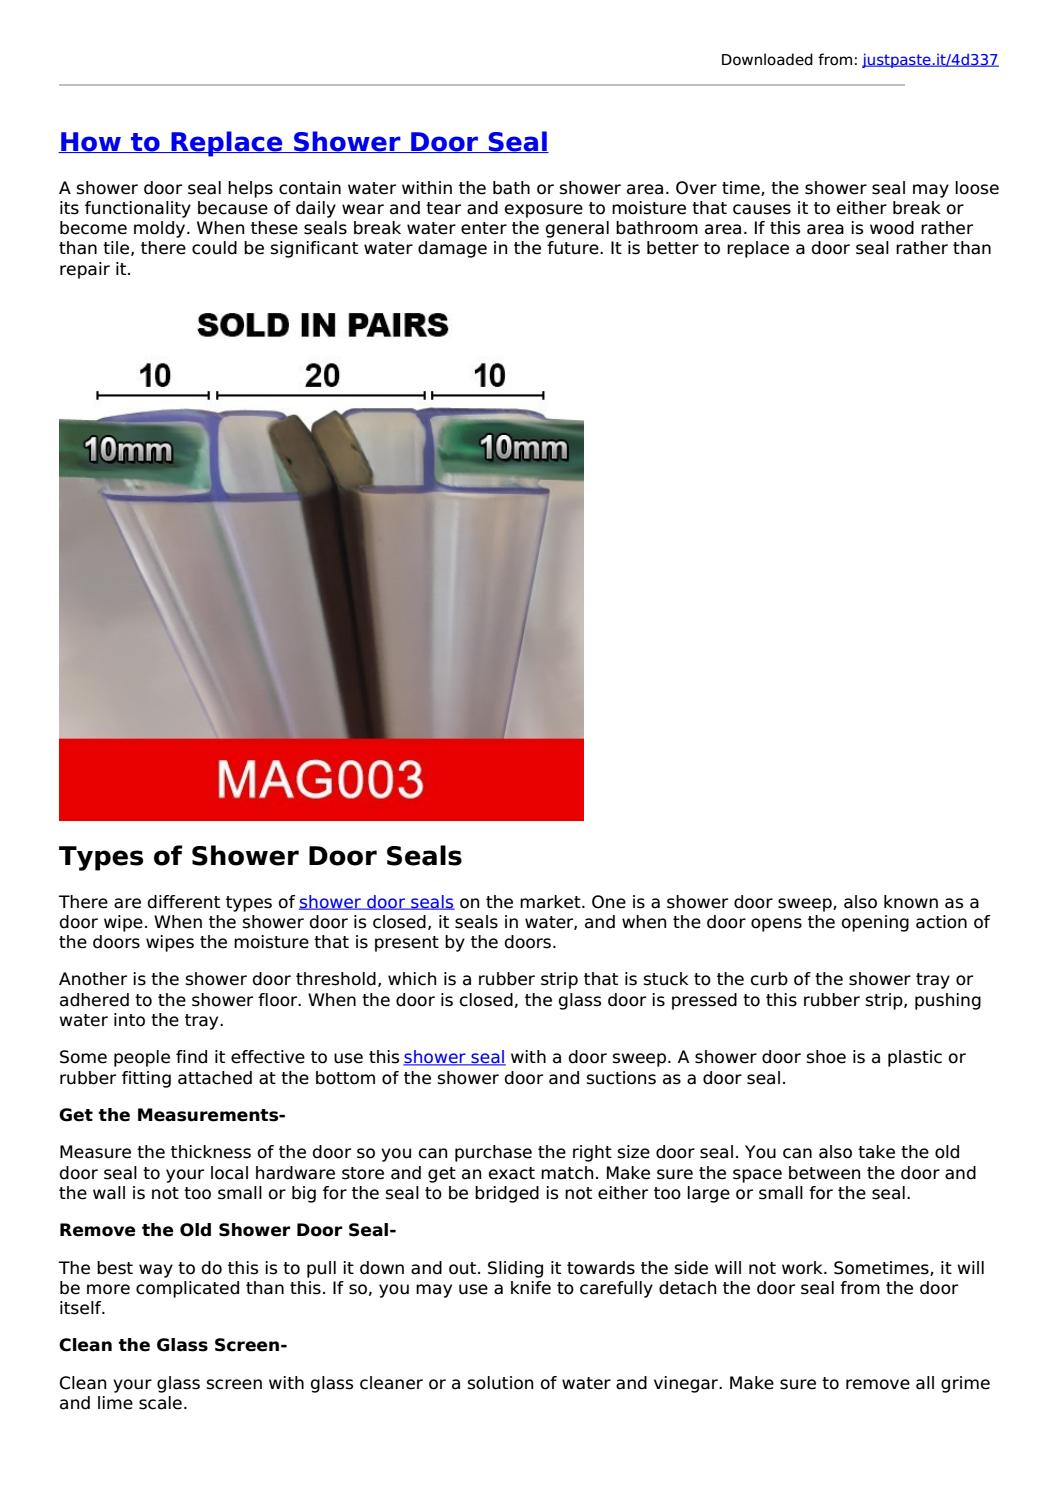 How To Replace Shower Door Seal By Showersealuk Issuu